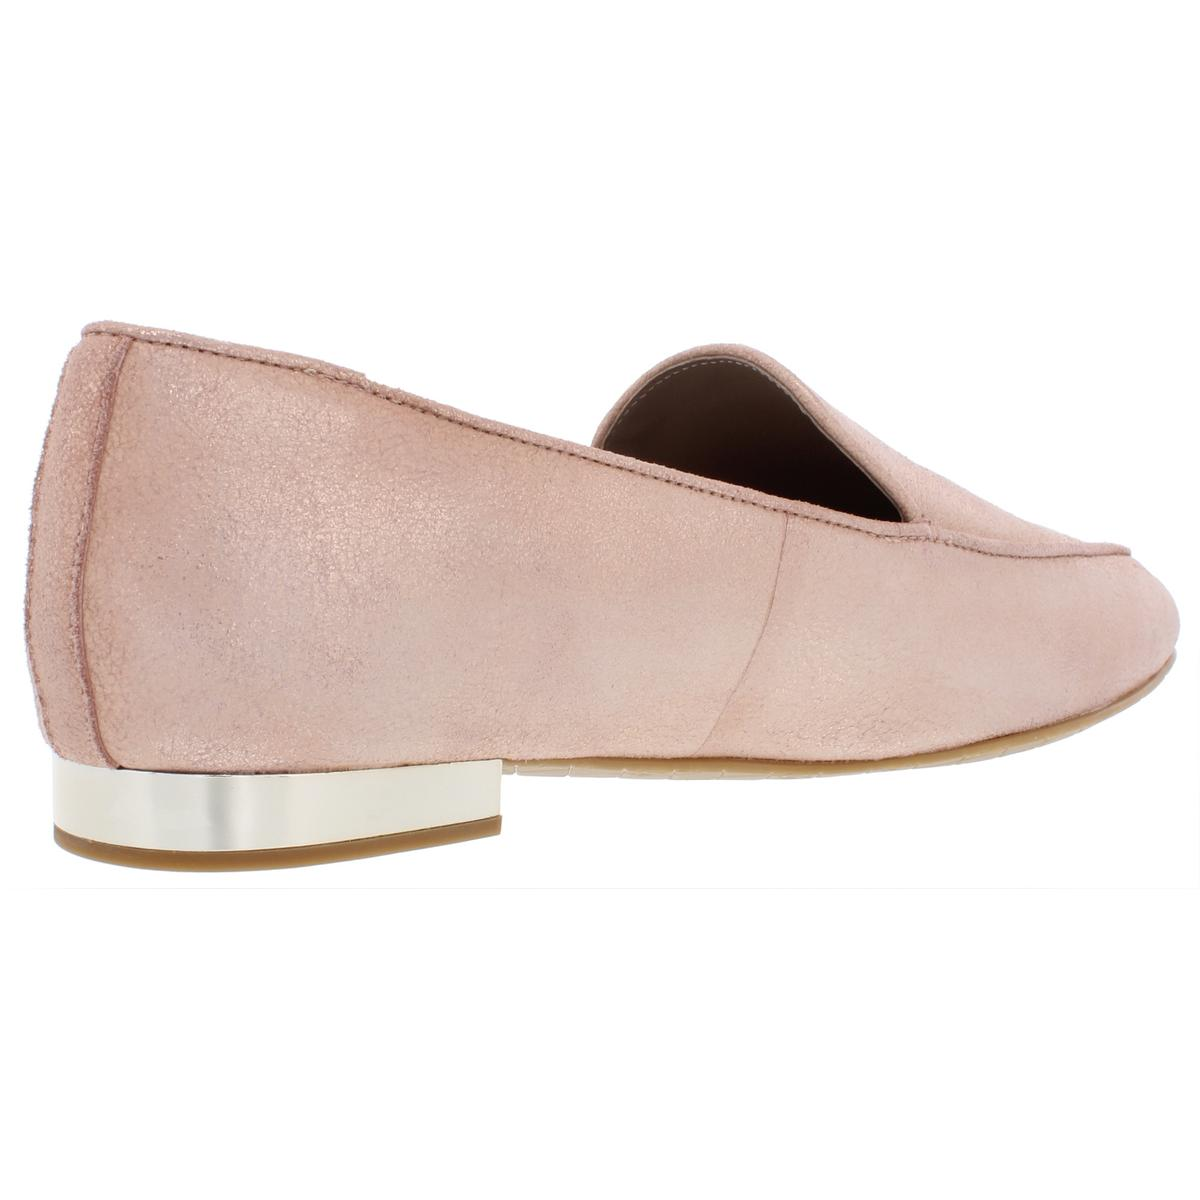 Donald-J-Pliner-Womens-Honey-Suede-Slip-On-Distressed-Loafers-Shoes-BHFO-7808 thumbnail 4